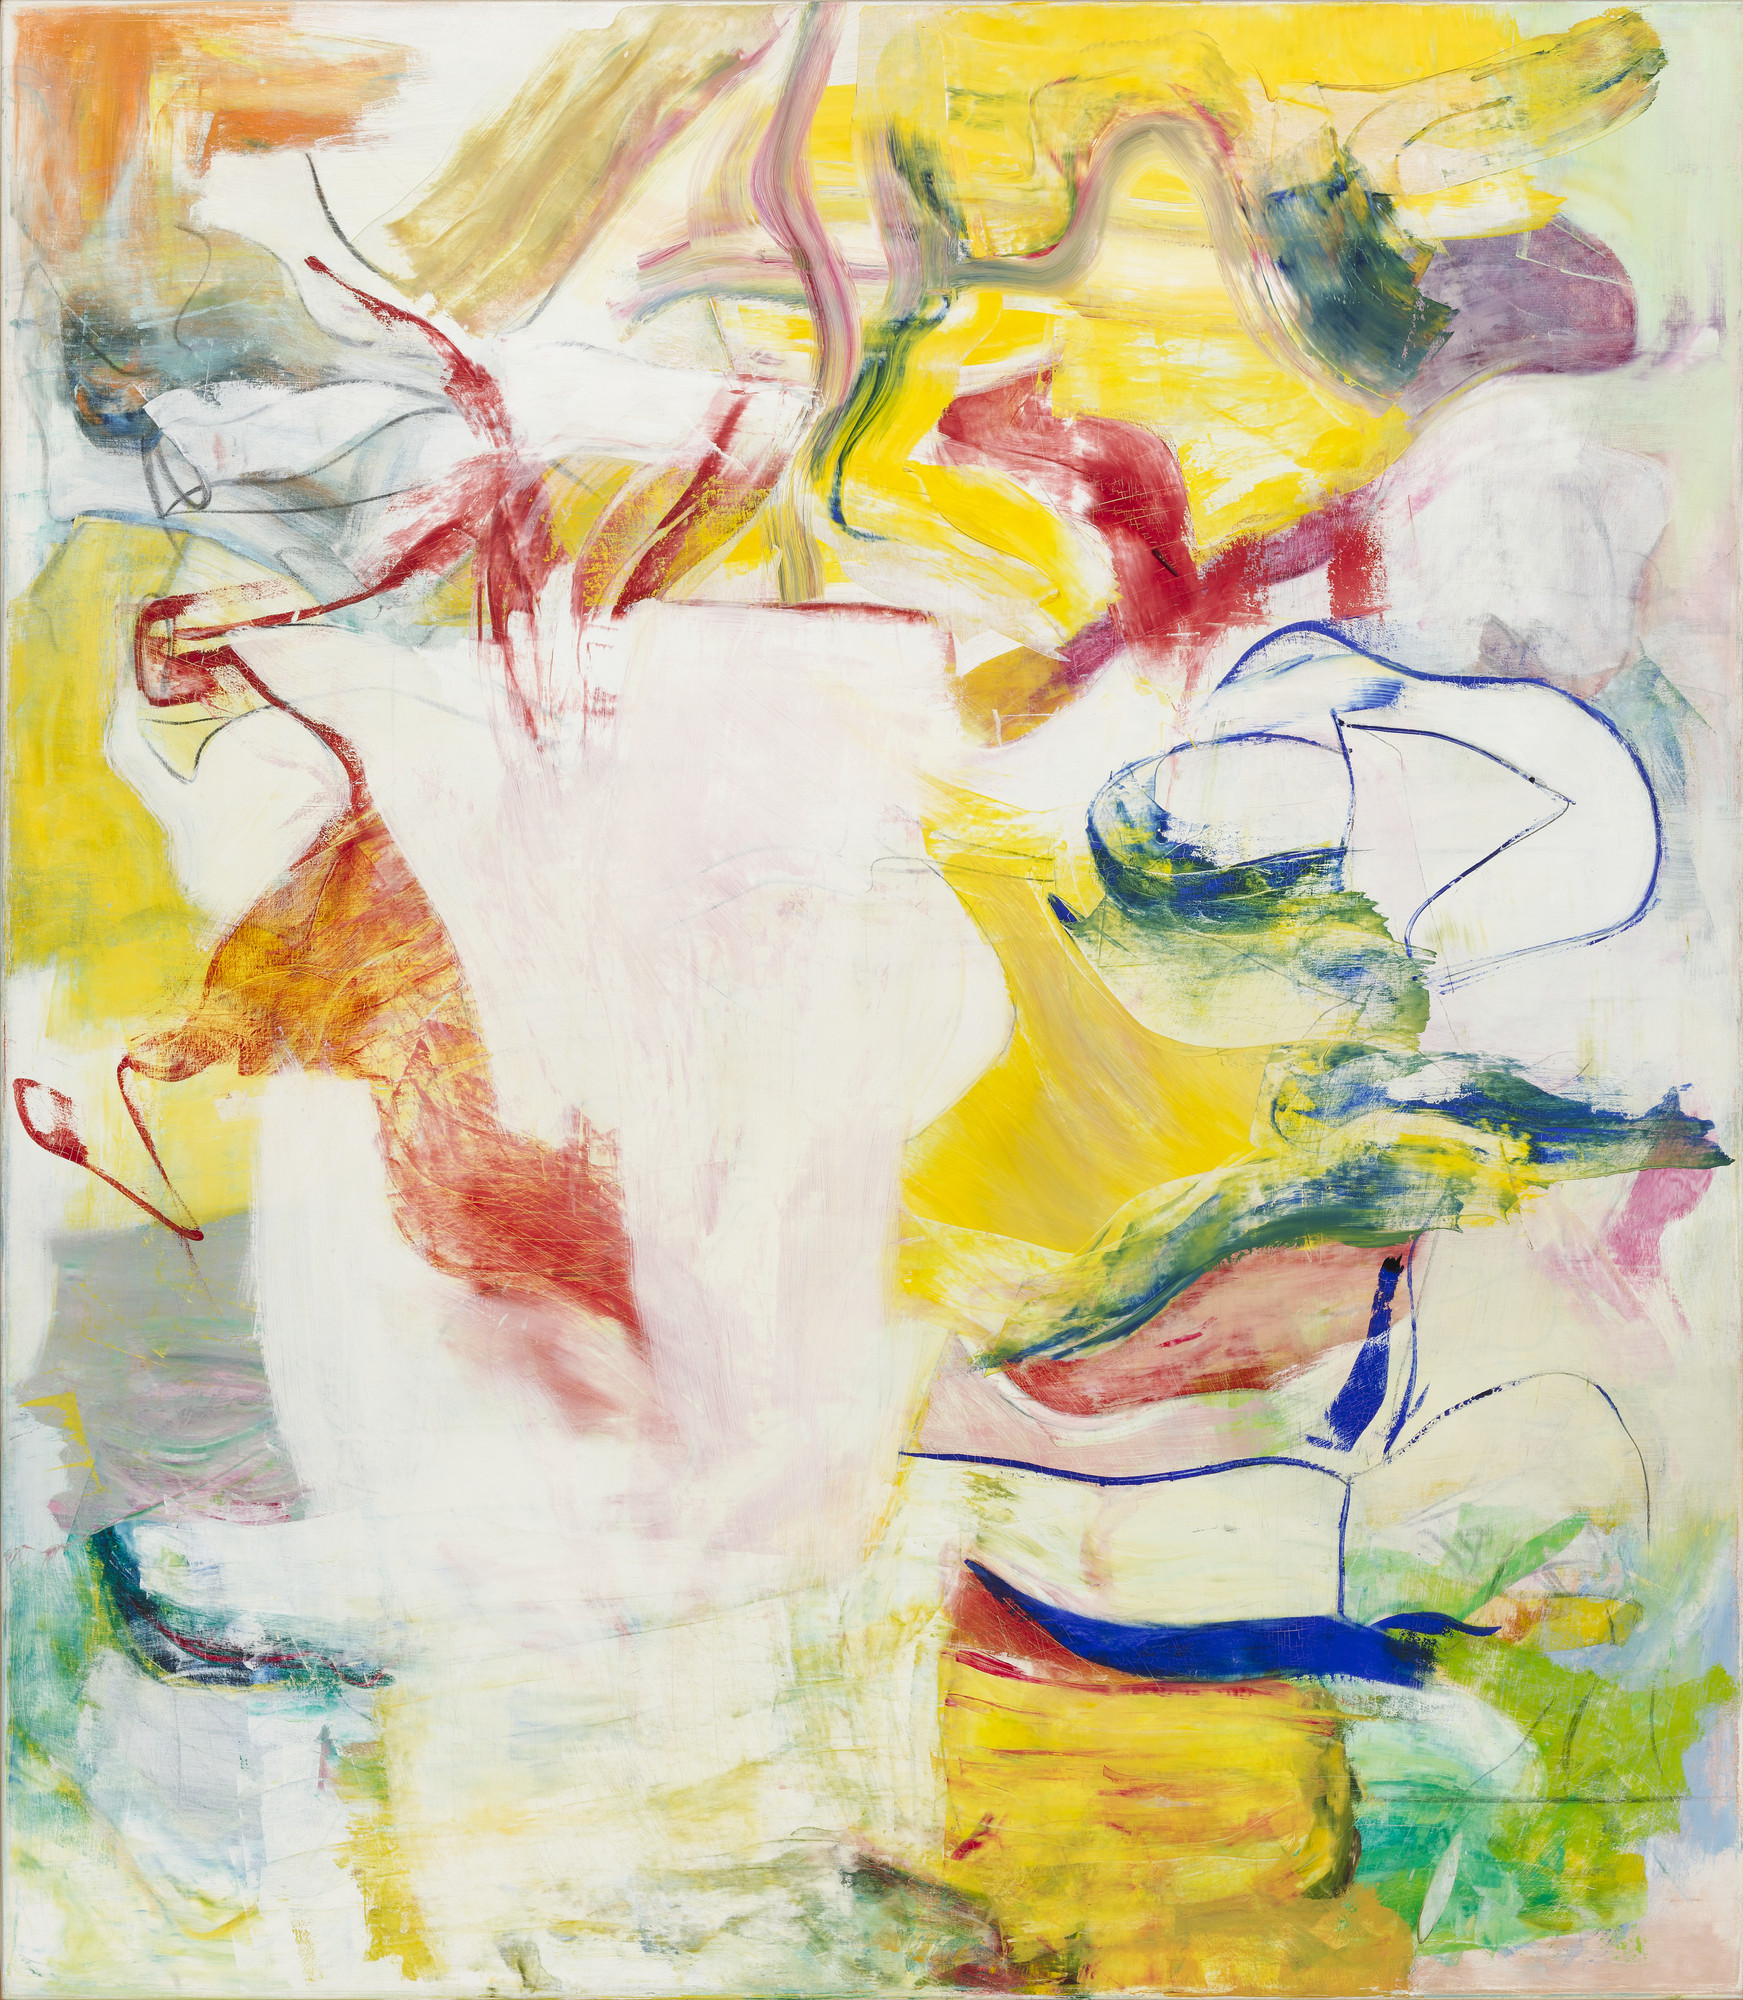 Willem de Kooning. Pirate (Untitled II). 1981. Oil on canvas. 88 × 76 3/4″. The Museum of Modern Art, New York. Sidney and Harriet Janis Collection Fund. © 1997 Willem de Kooning Revocable Trust/Artists Rights Society (ARS), New York.